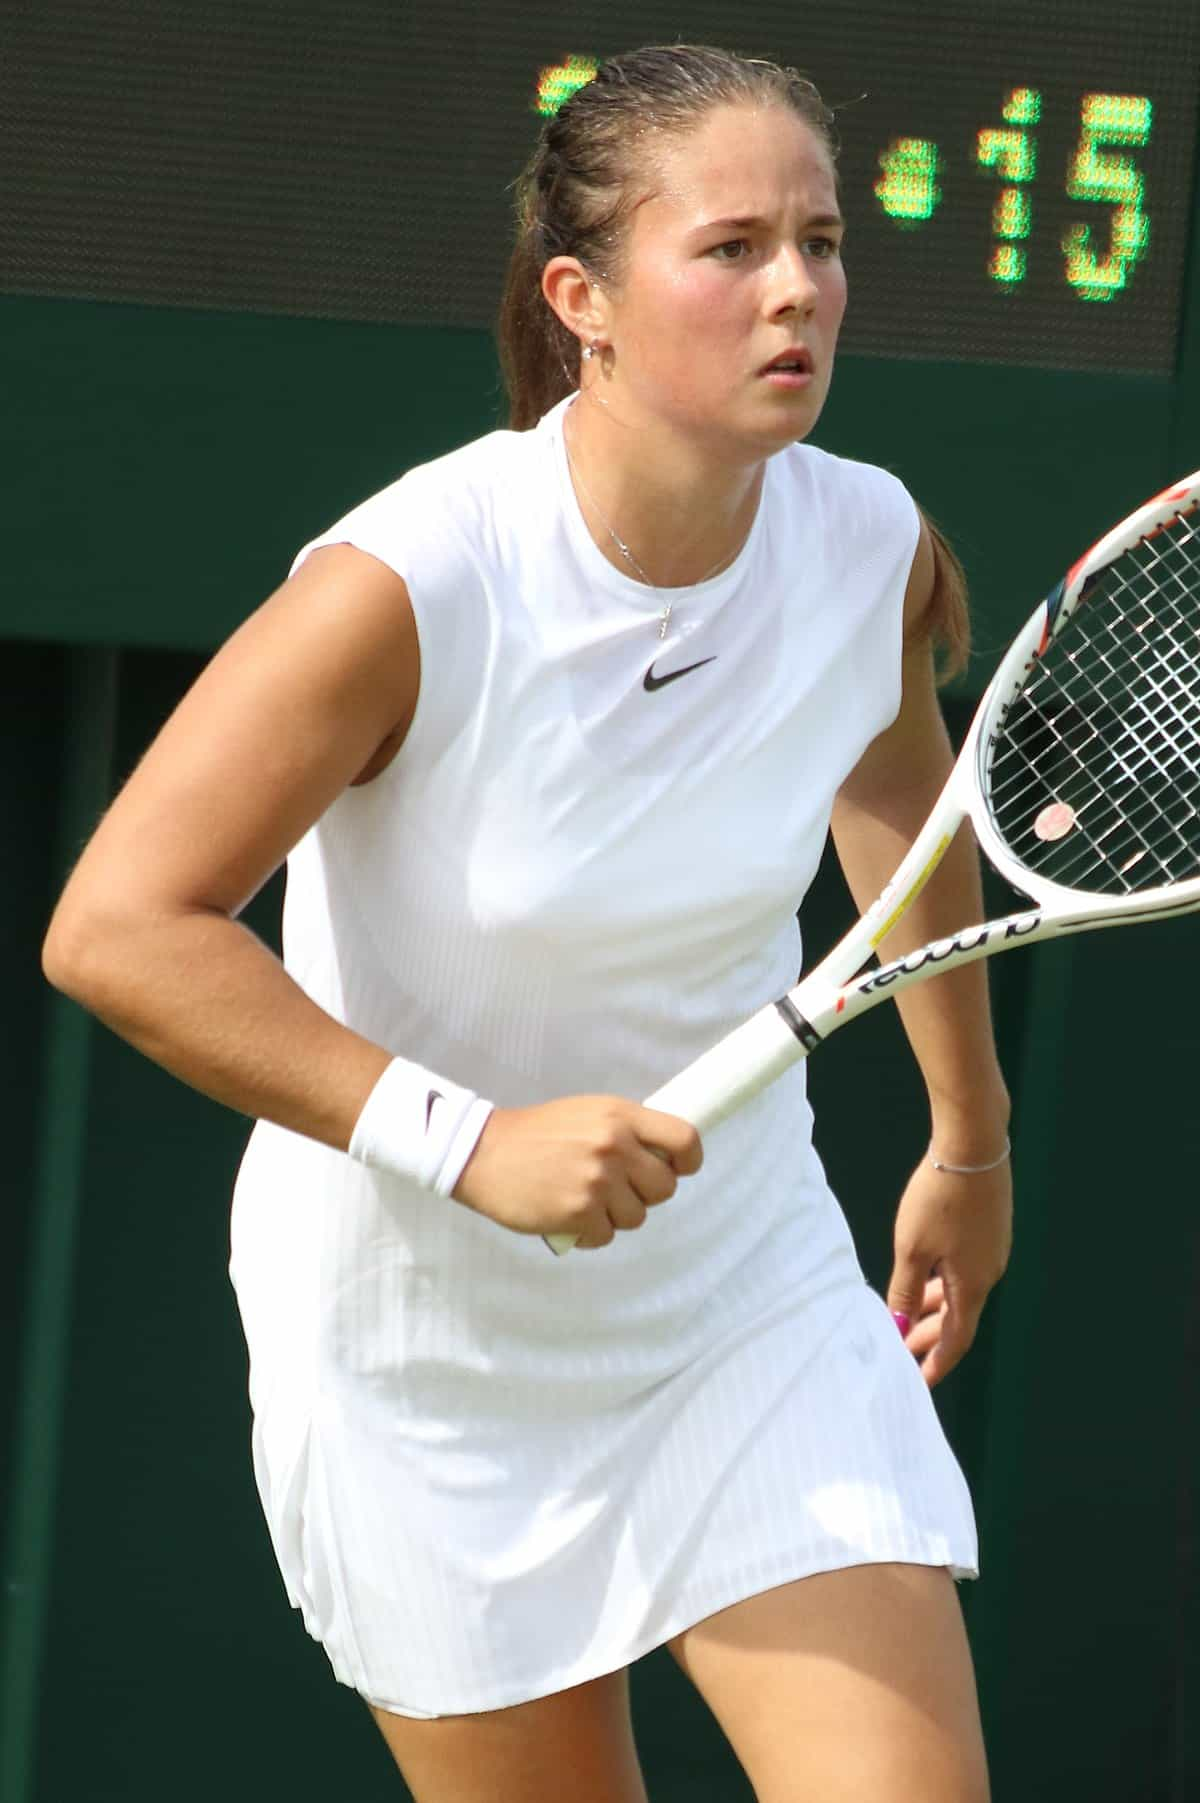 kasatkina - photo #40